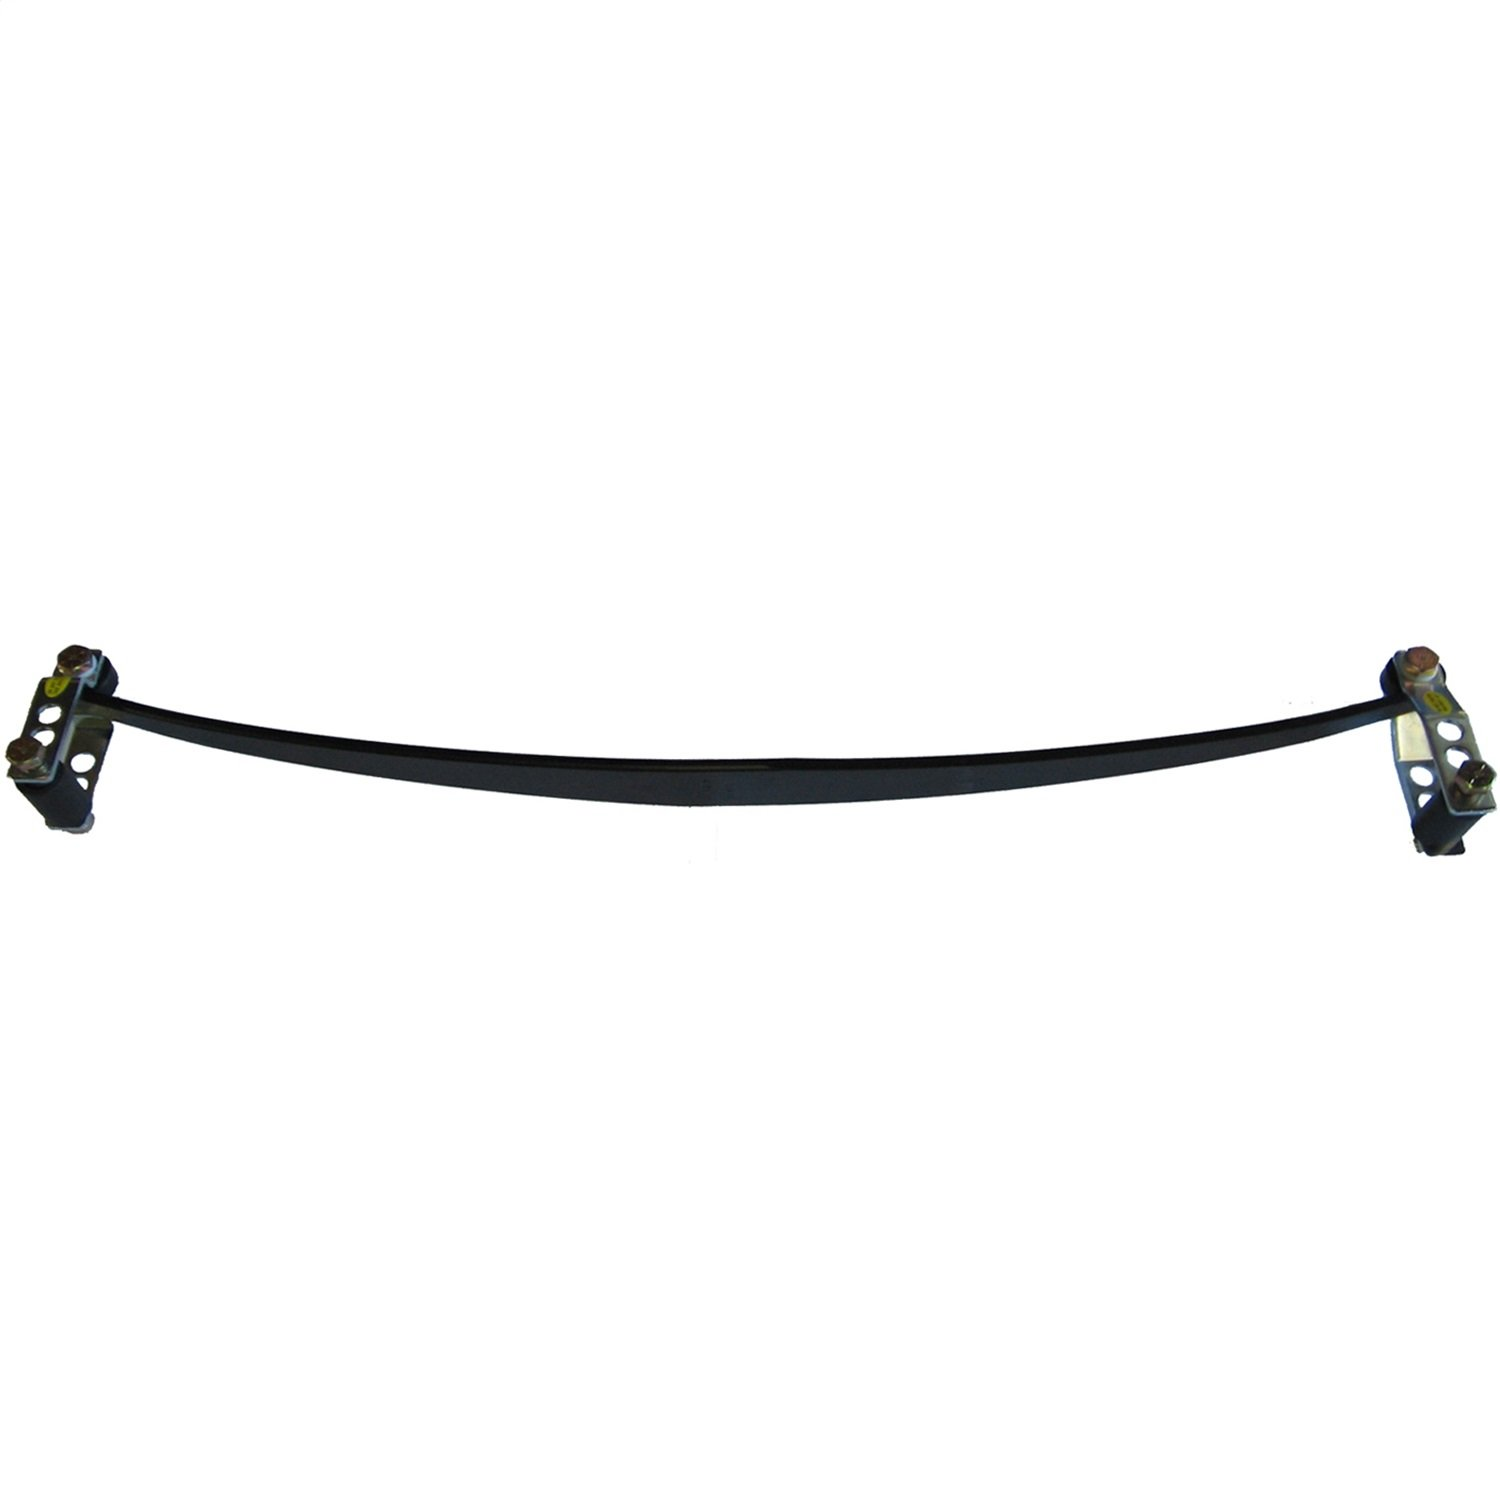 SuperSprings SSA16 Self-Adjusting Leaf Spring Enhancer/Stabilizer